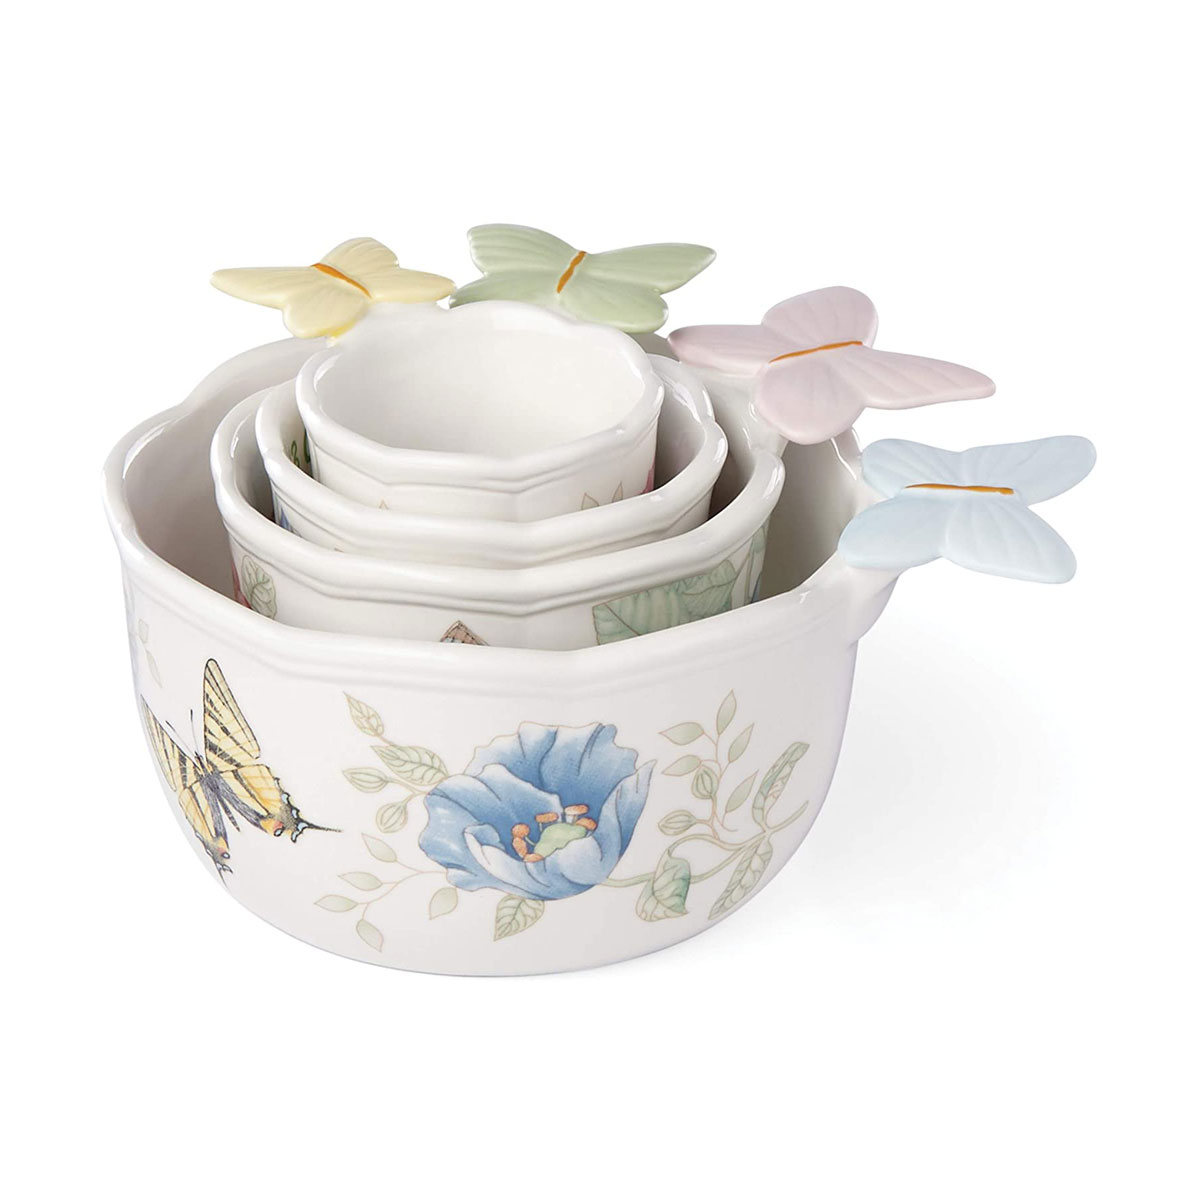 Lenox China Butterfly Meadow, 4 Pc Set Measuring Cups